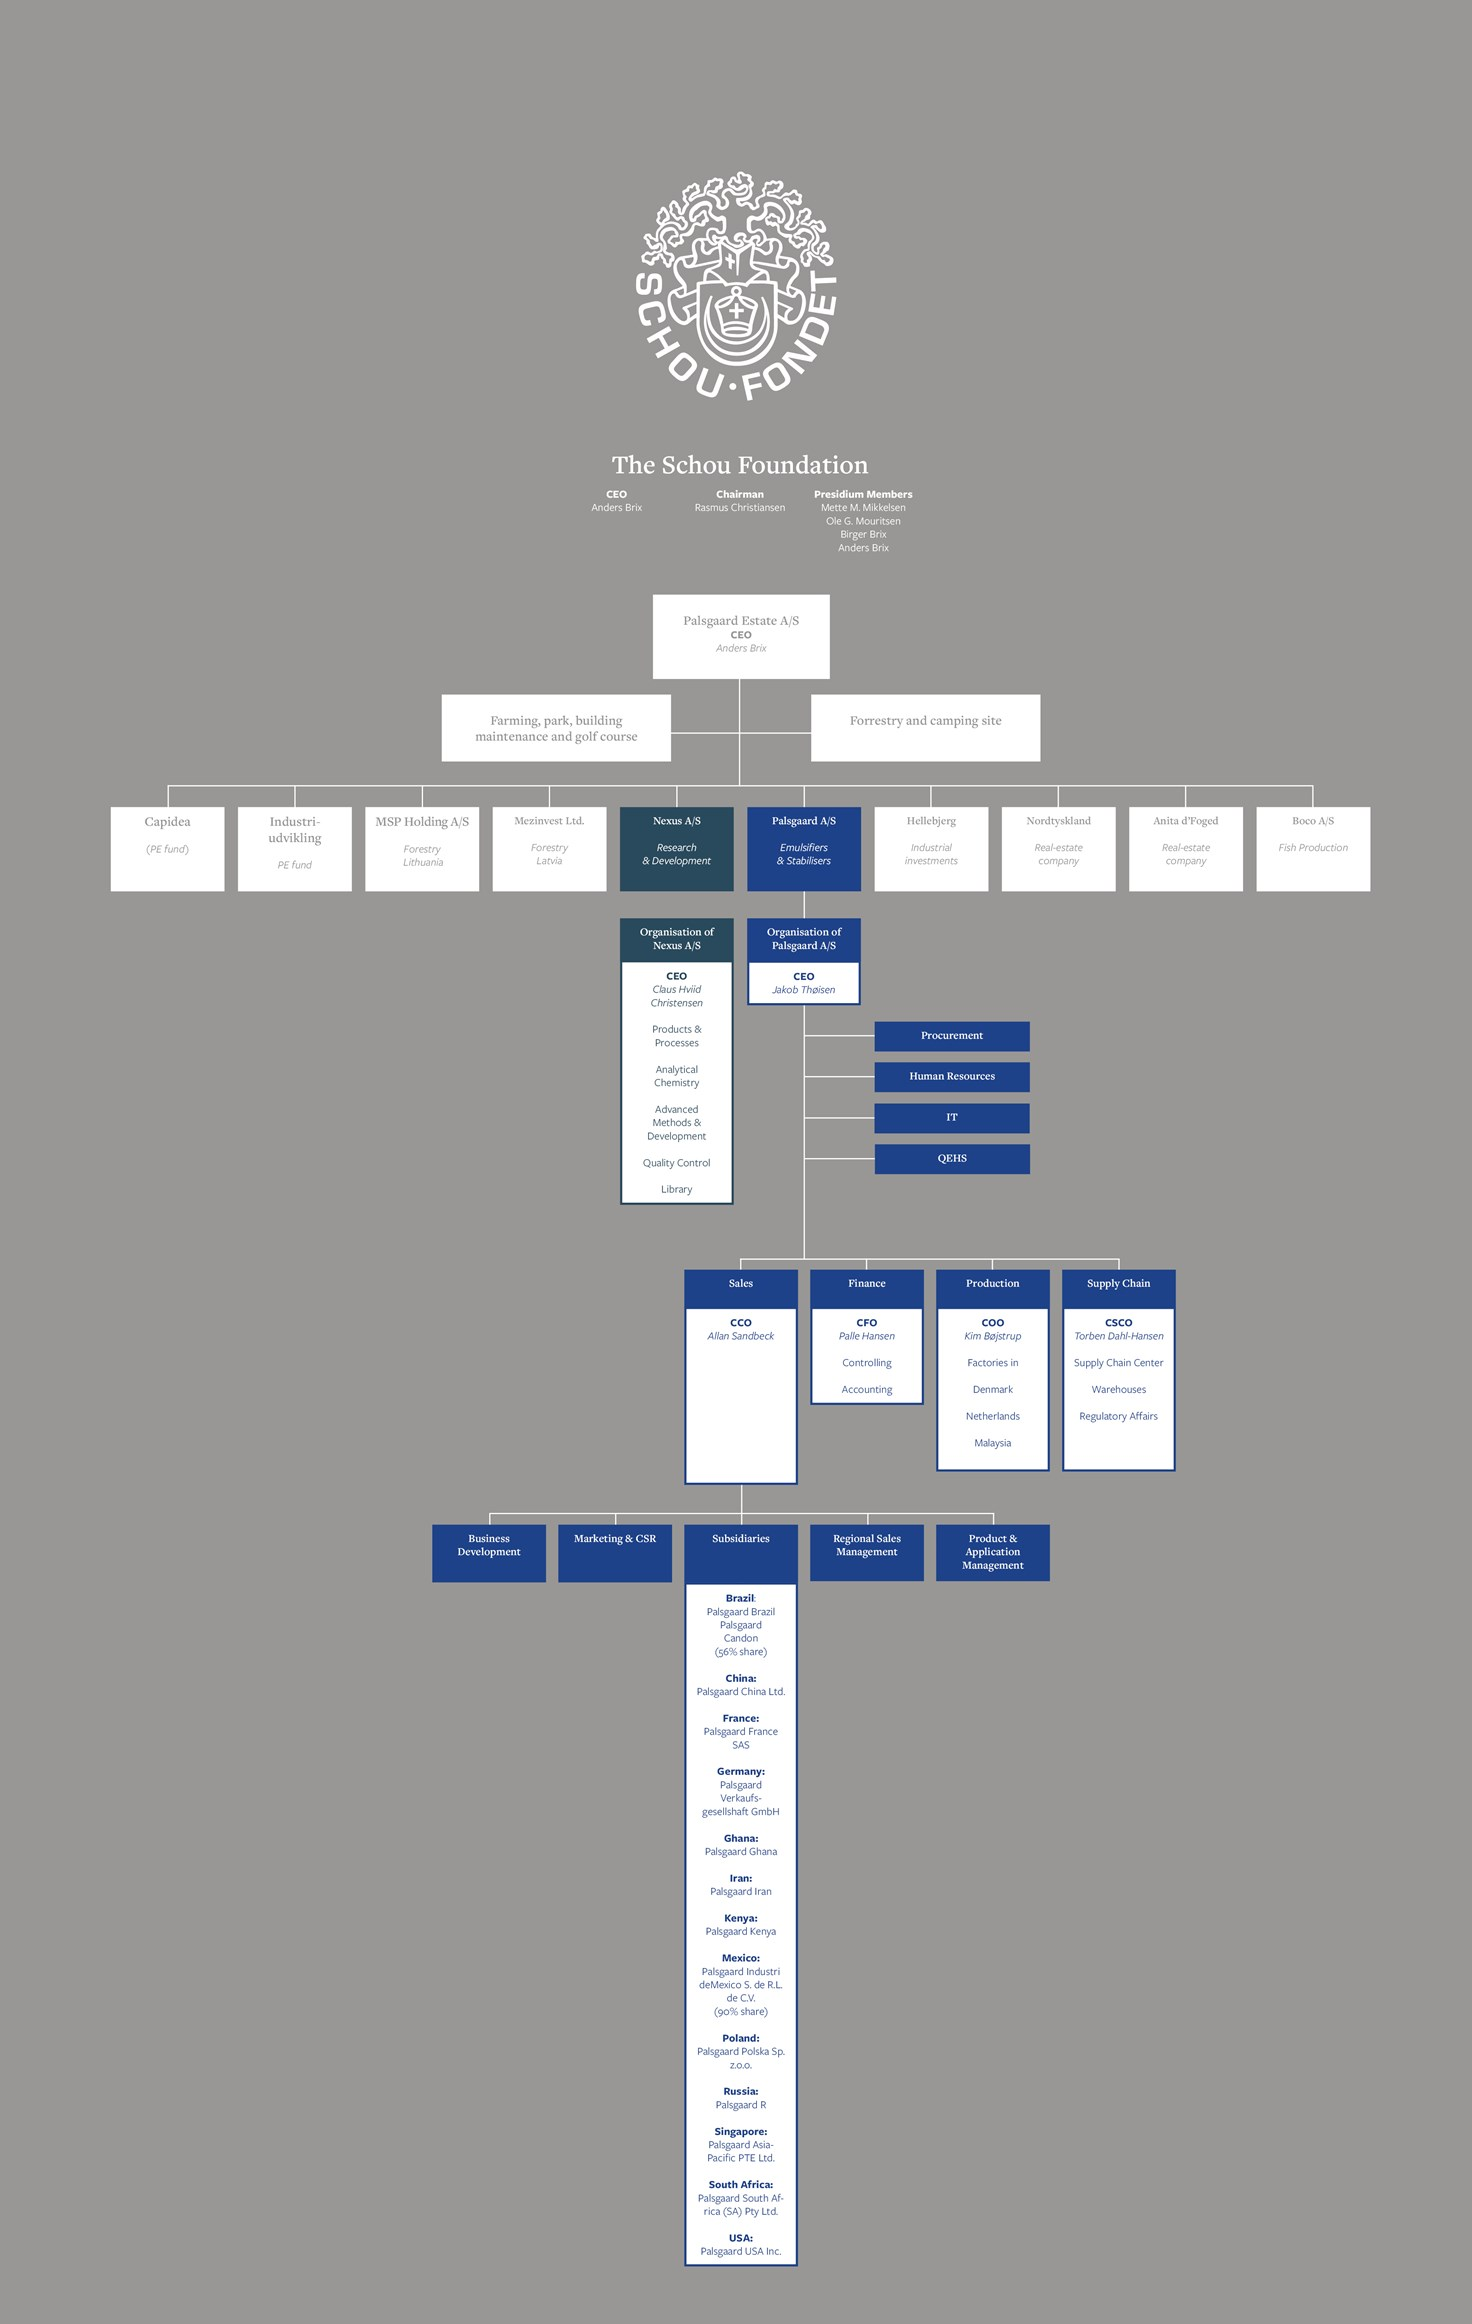 Schou Foundation Organisational Chart March 2019 Approved